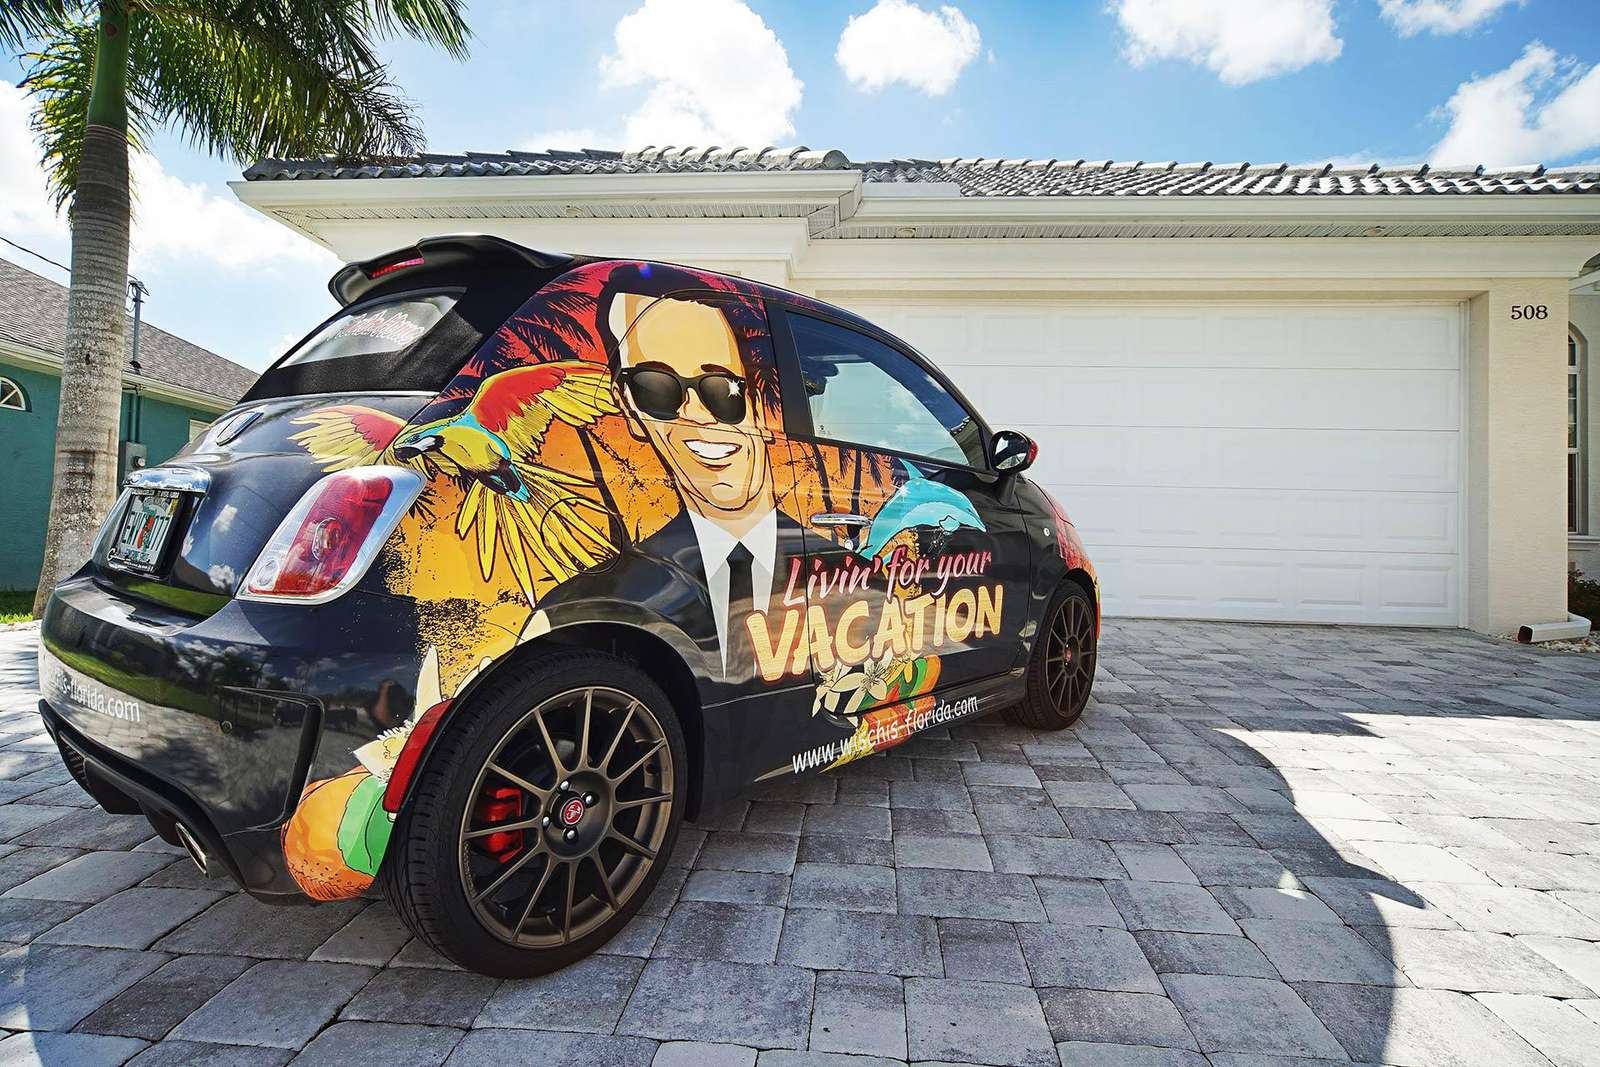 Wischis Florida Home - Living' for your vacation Fiat 500